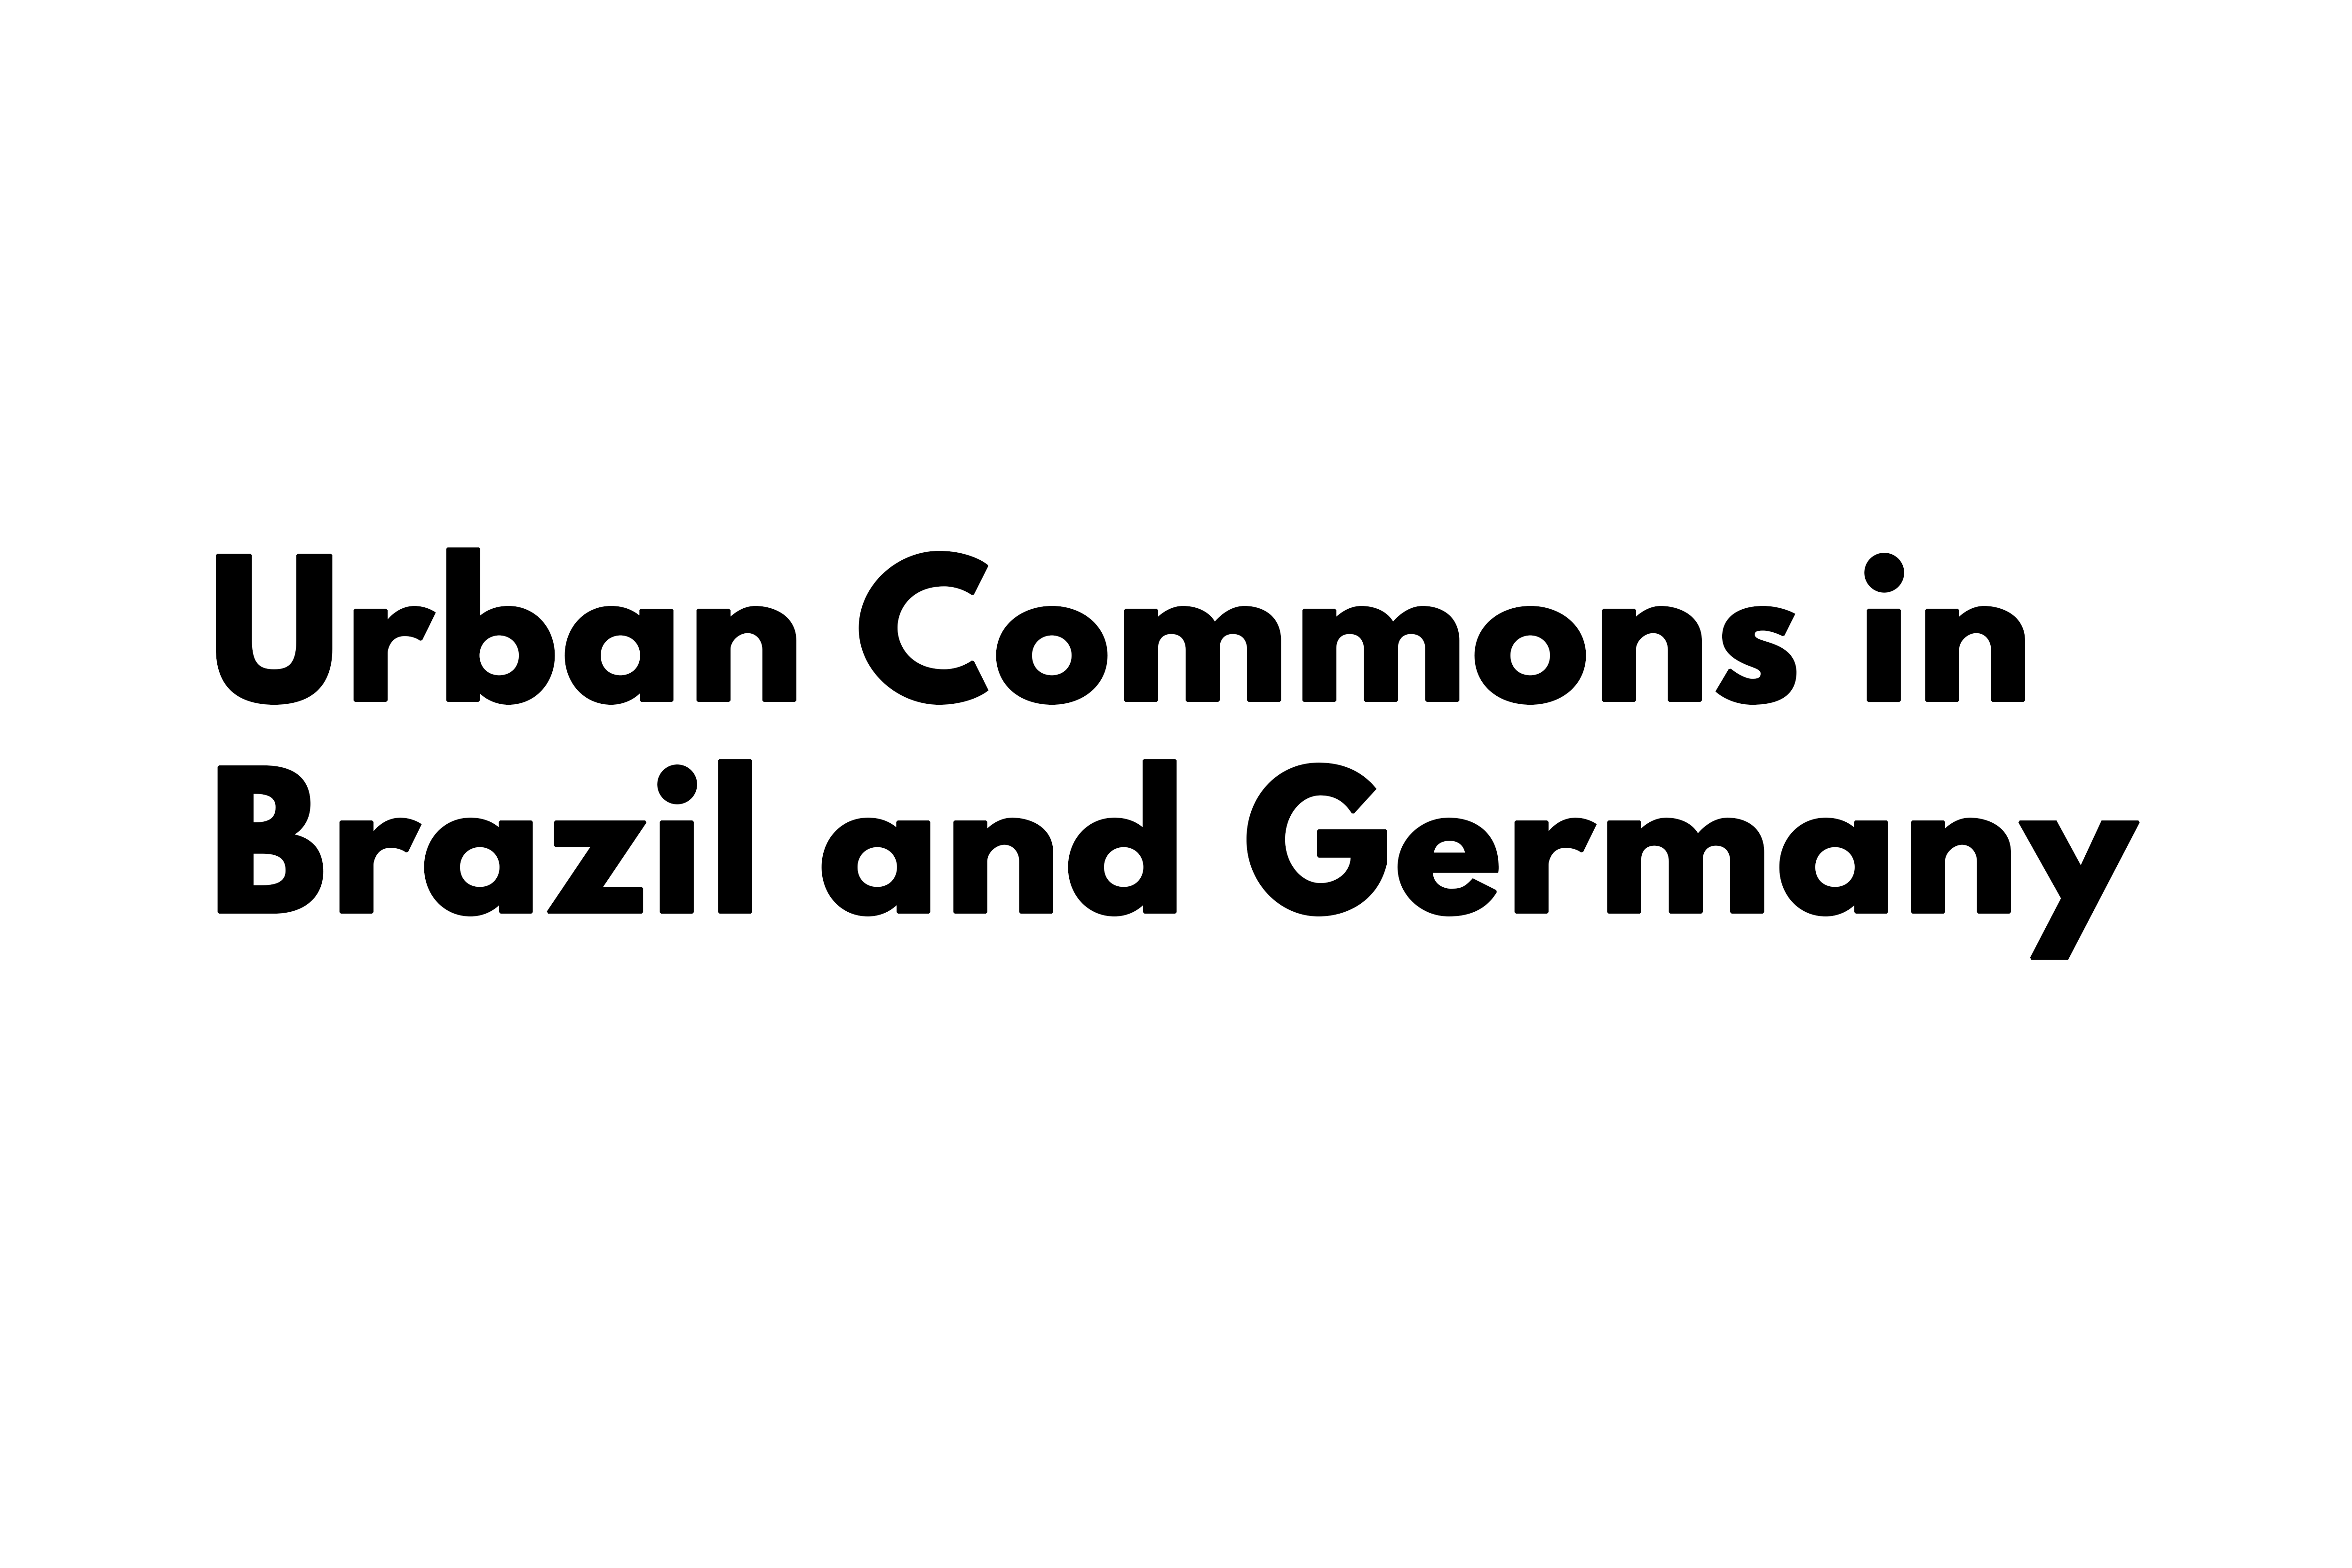 Urban Commons in Brazil and Germany